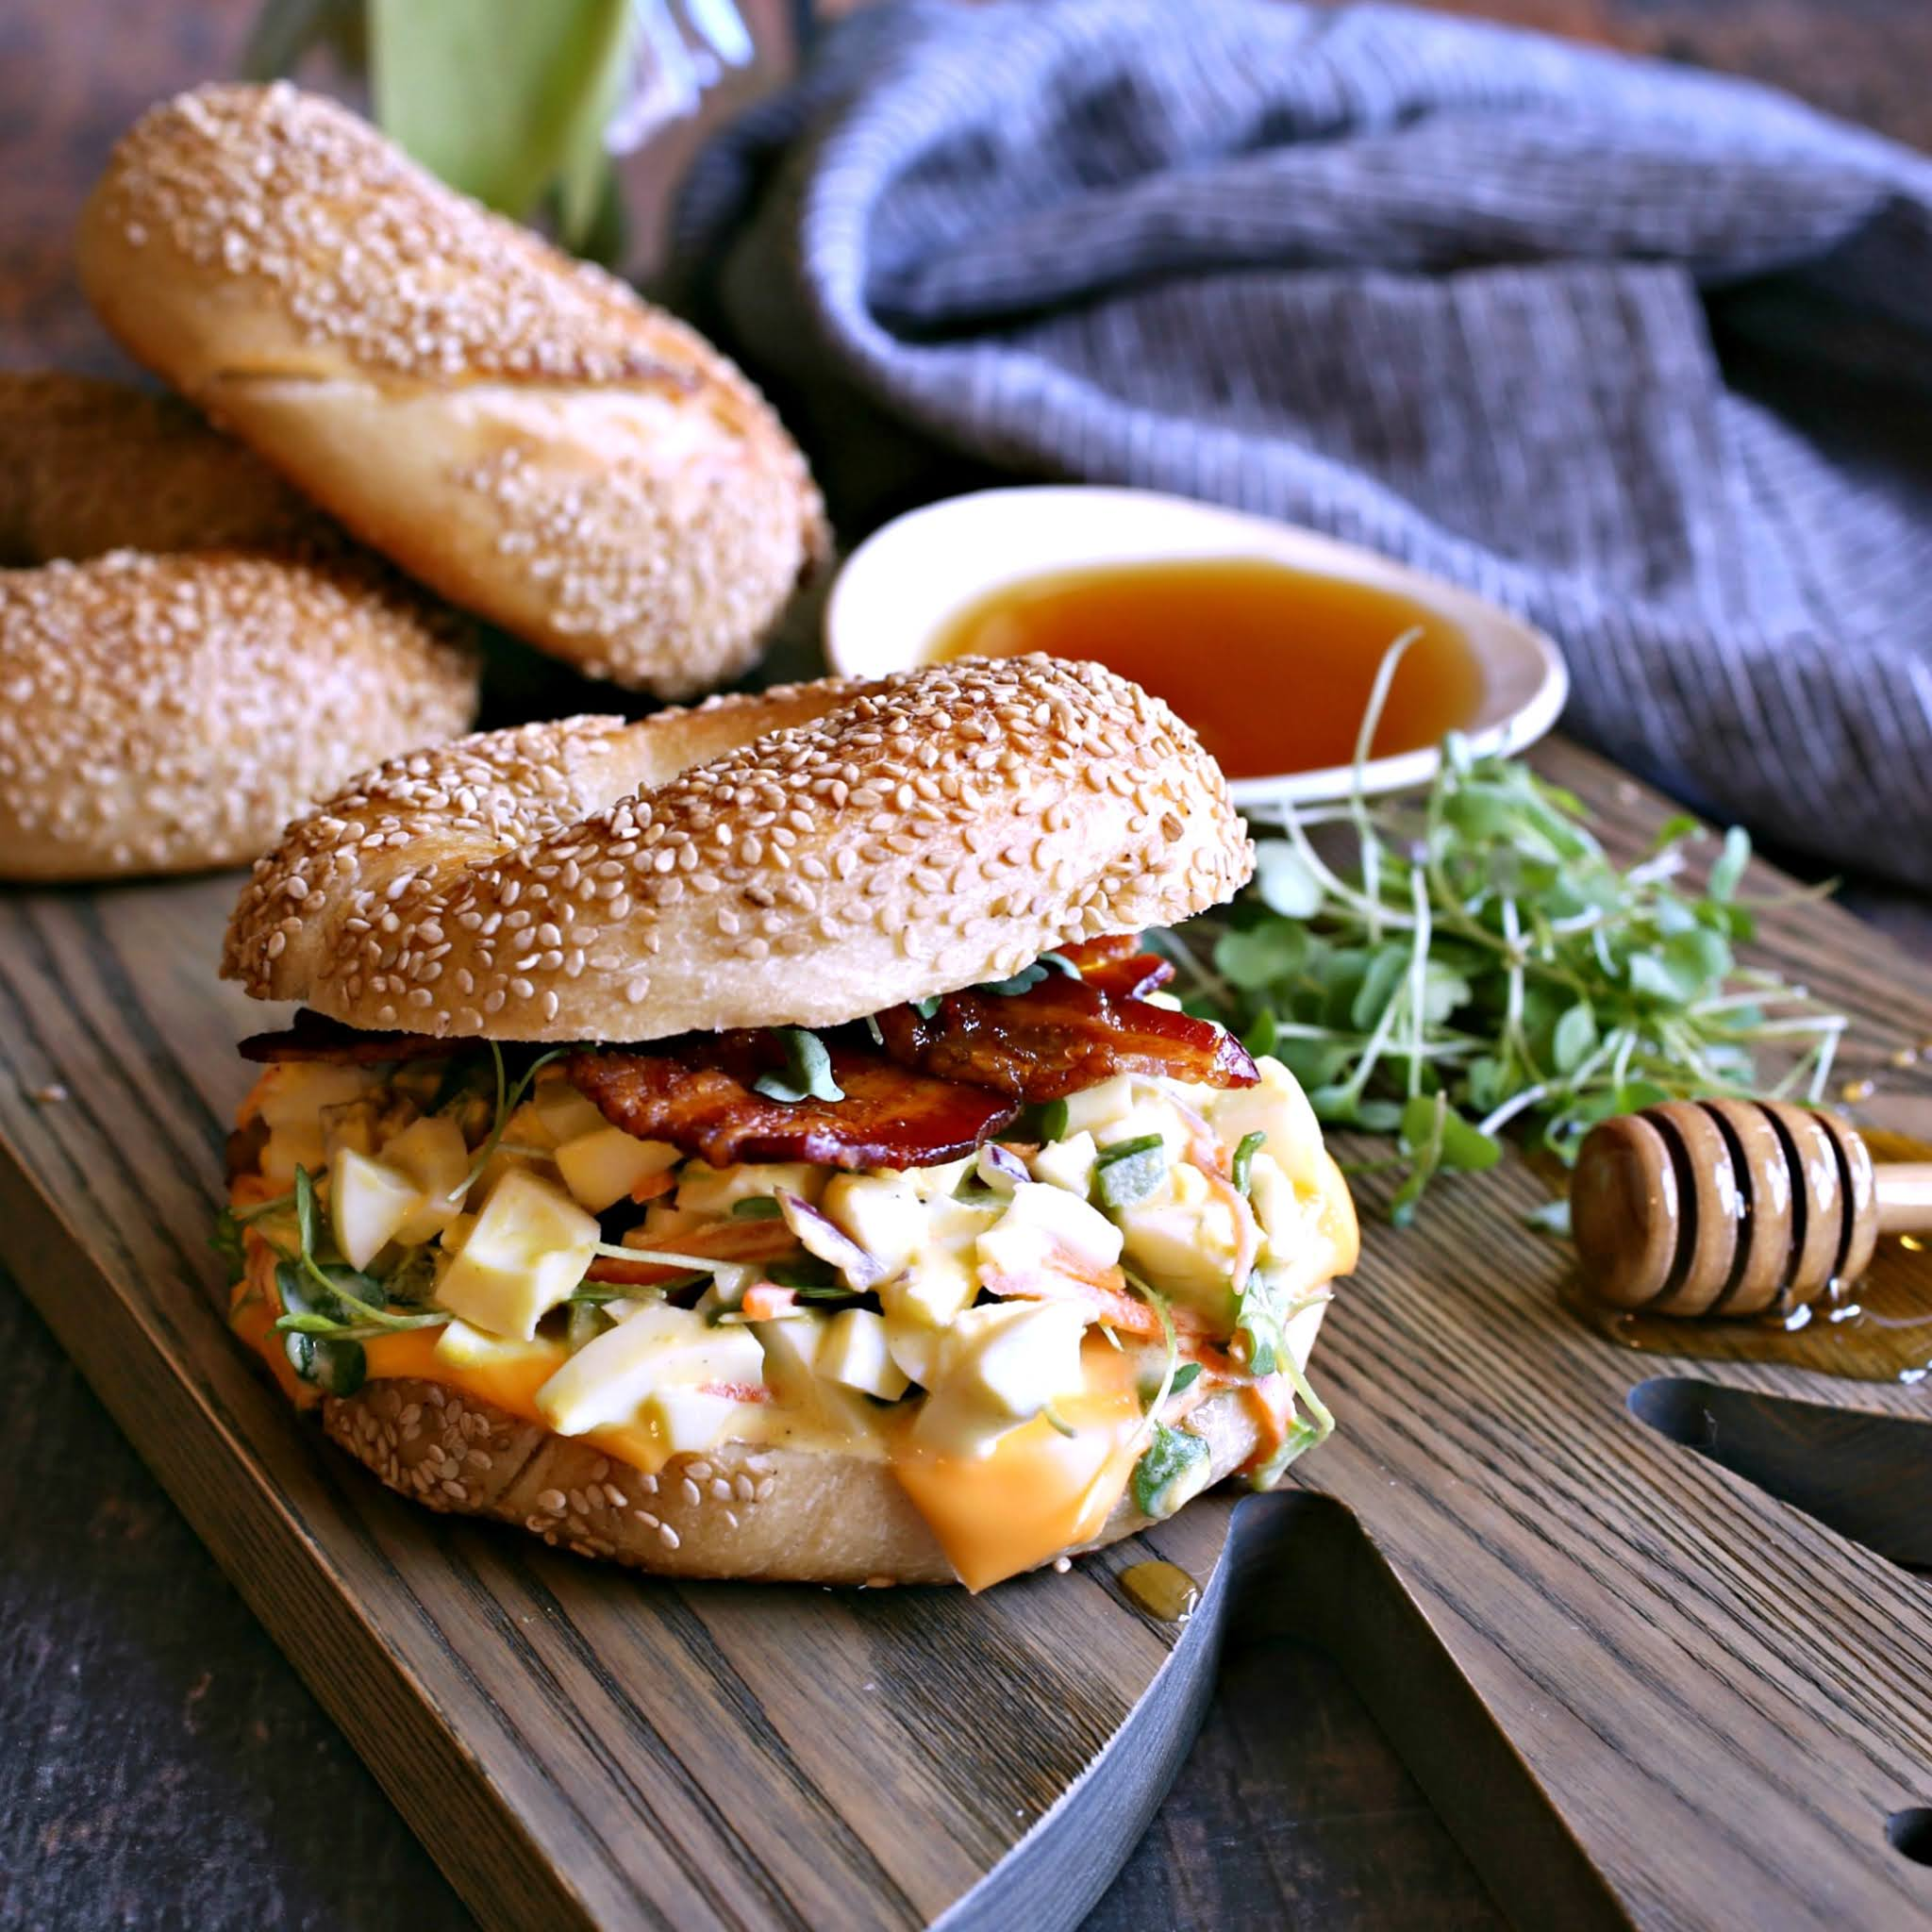 Recipe for an egg salad sandwich on a bagel, topped with bacon roasted with honey.